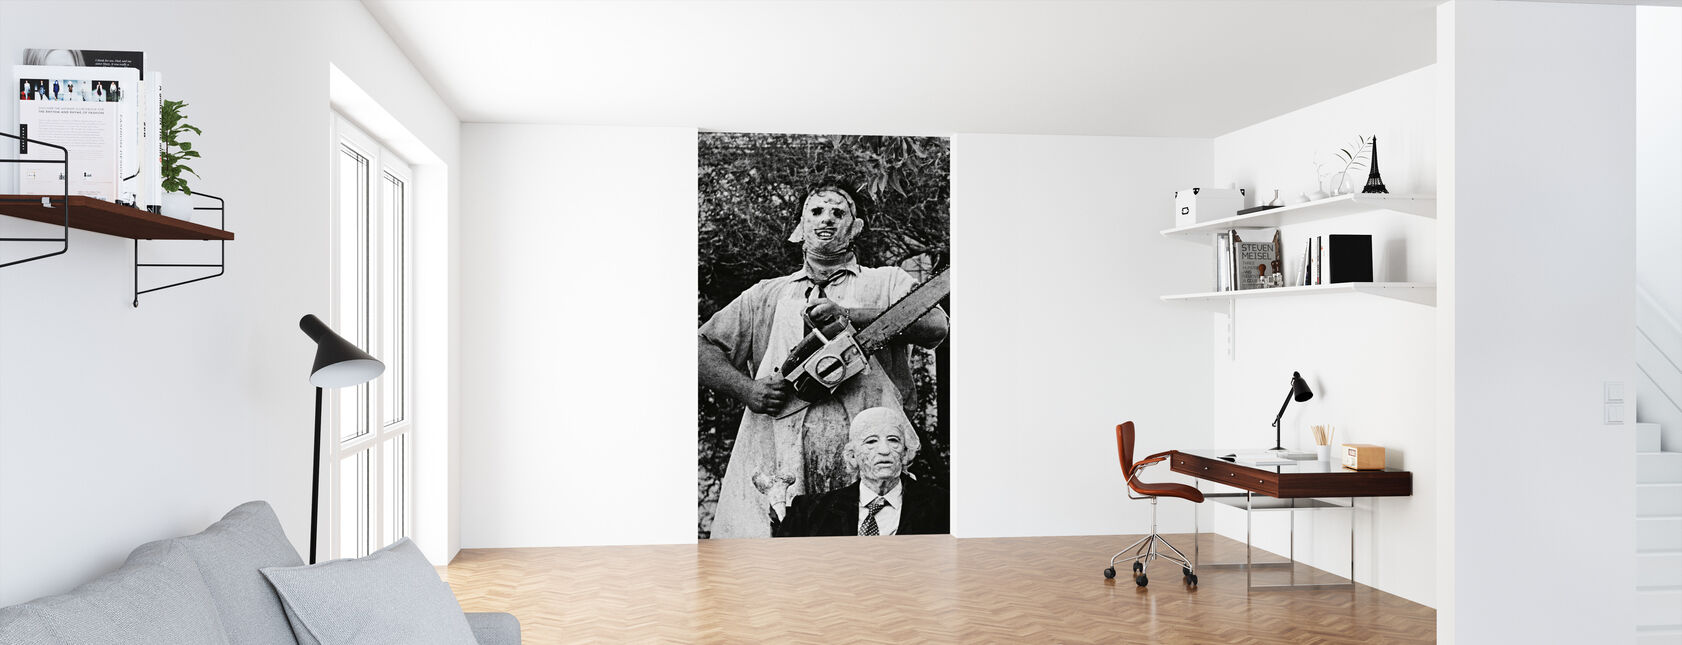 Leatherface - Wallpaper - Office